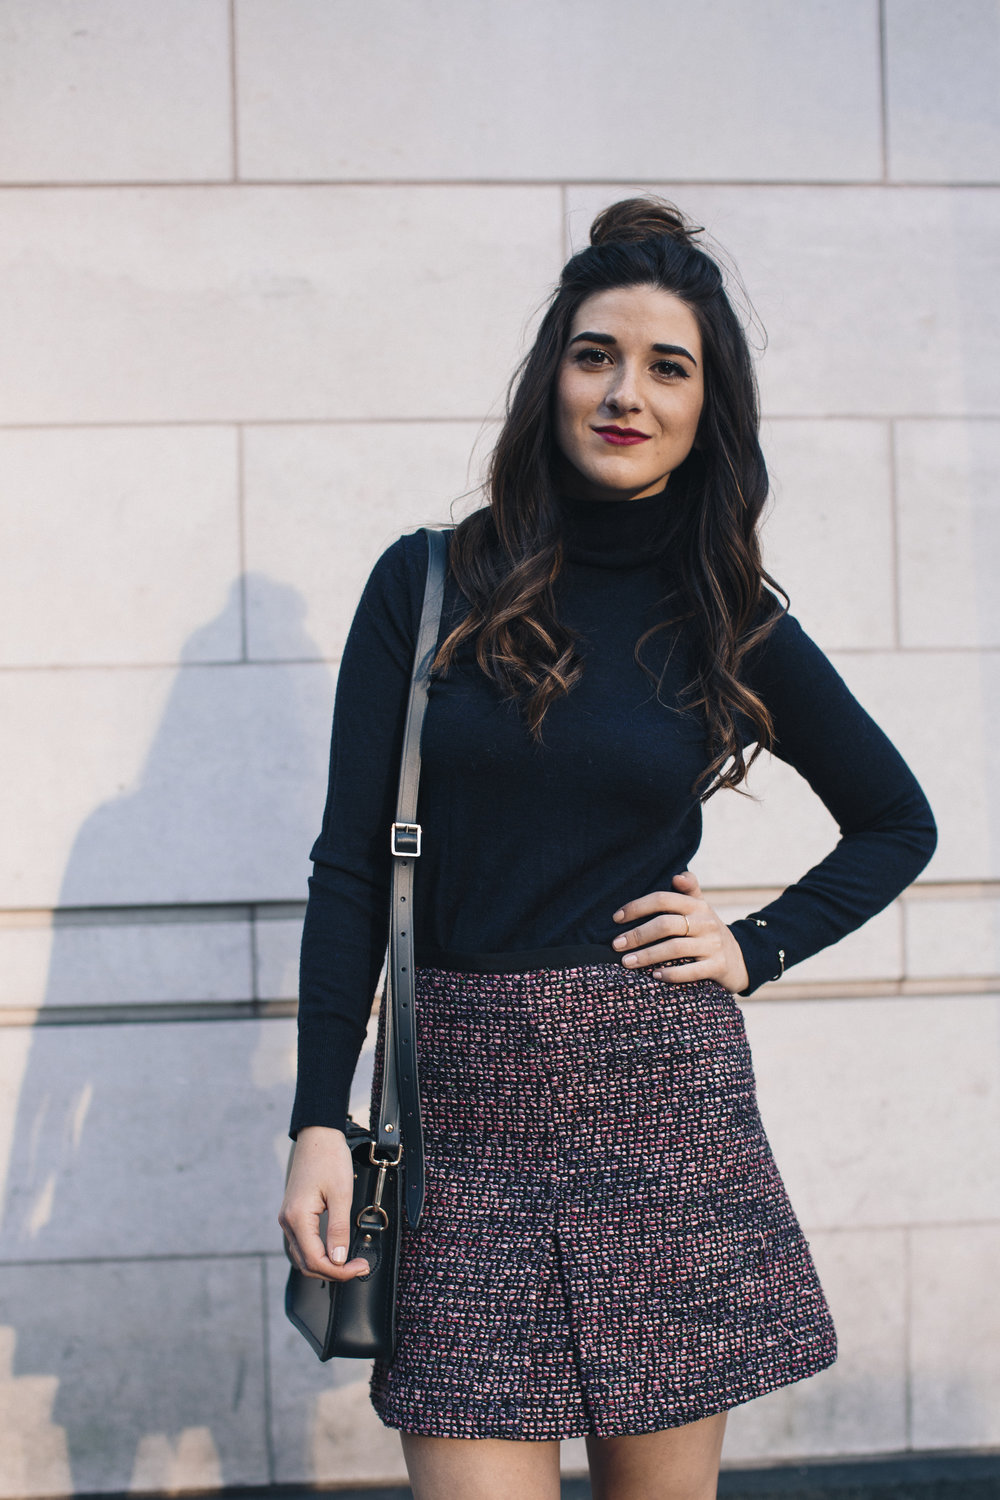 Navy Turtleneck Tweed Skirt My 10 Best Blogging Moments Louboutins & Love Fashion Blog Esther Santer NYC Street Style Blogger Outfit OOTD Trendy Cambridge Satchel Topknot Bag Hair Bun Women Girl Winter Beauty Shop Shoes Tan Fringe Ivanka Trump Booties.jpg